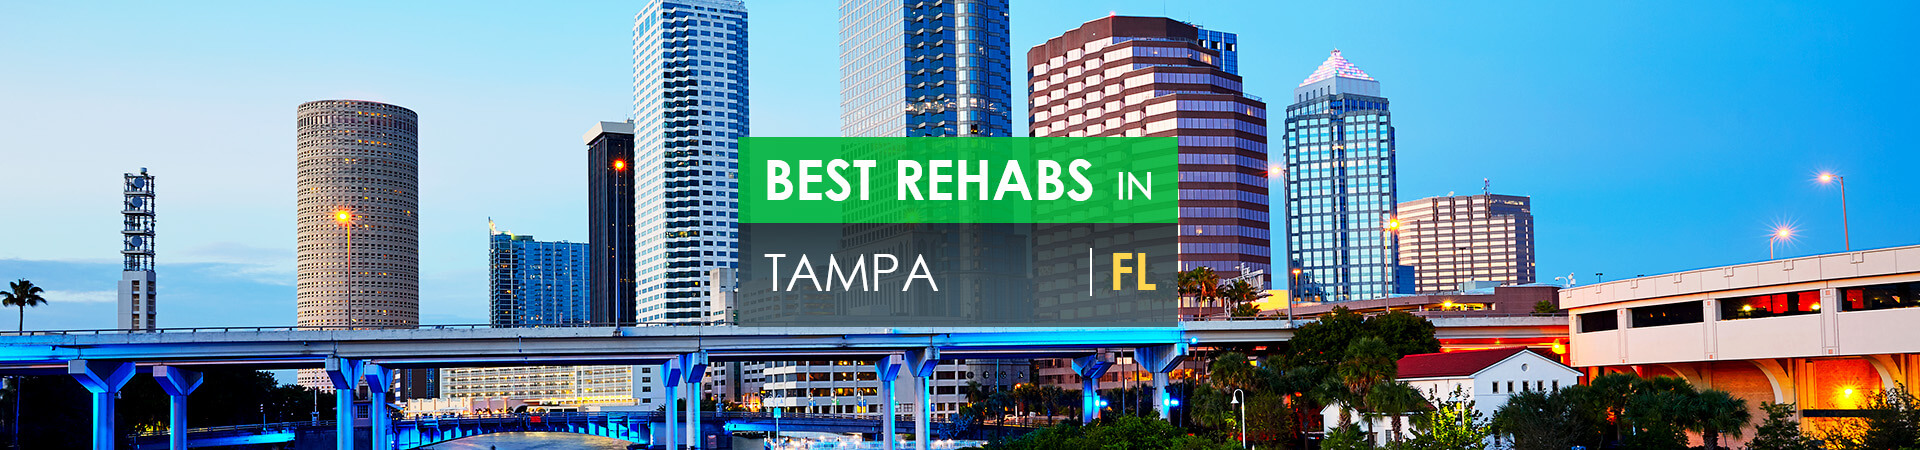 Best rehabs in Tampa, FL